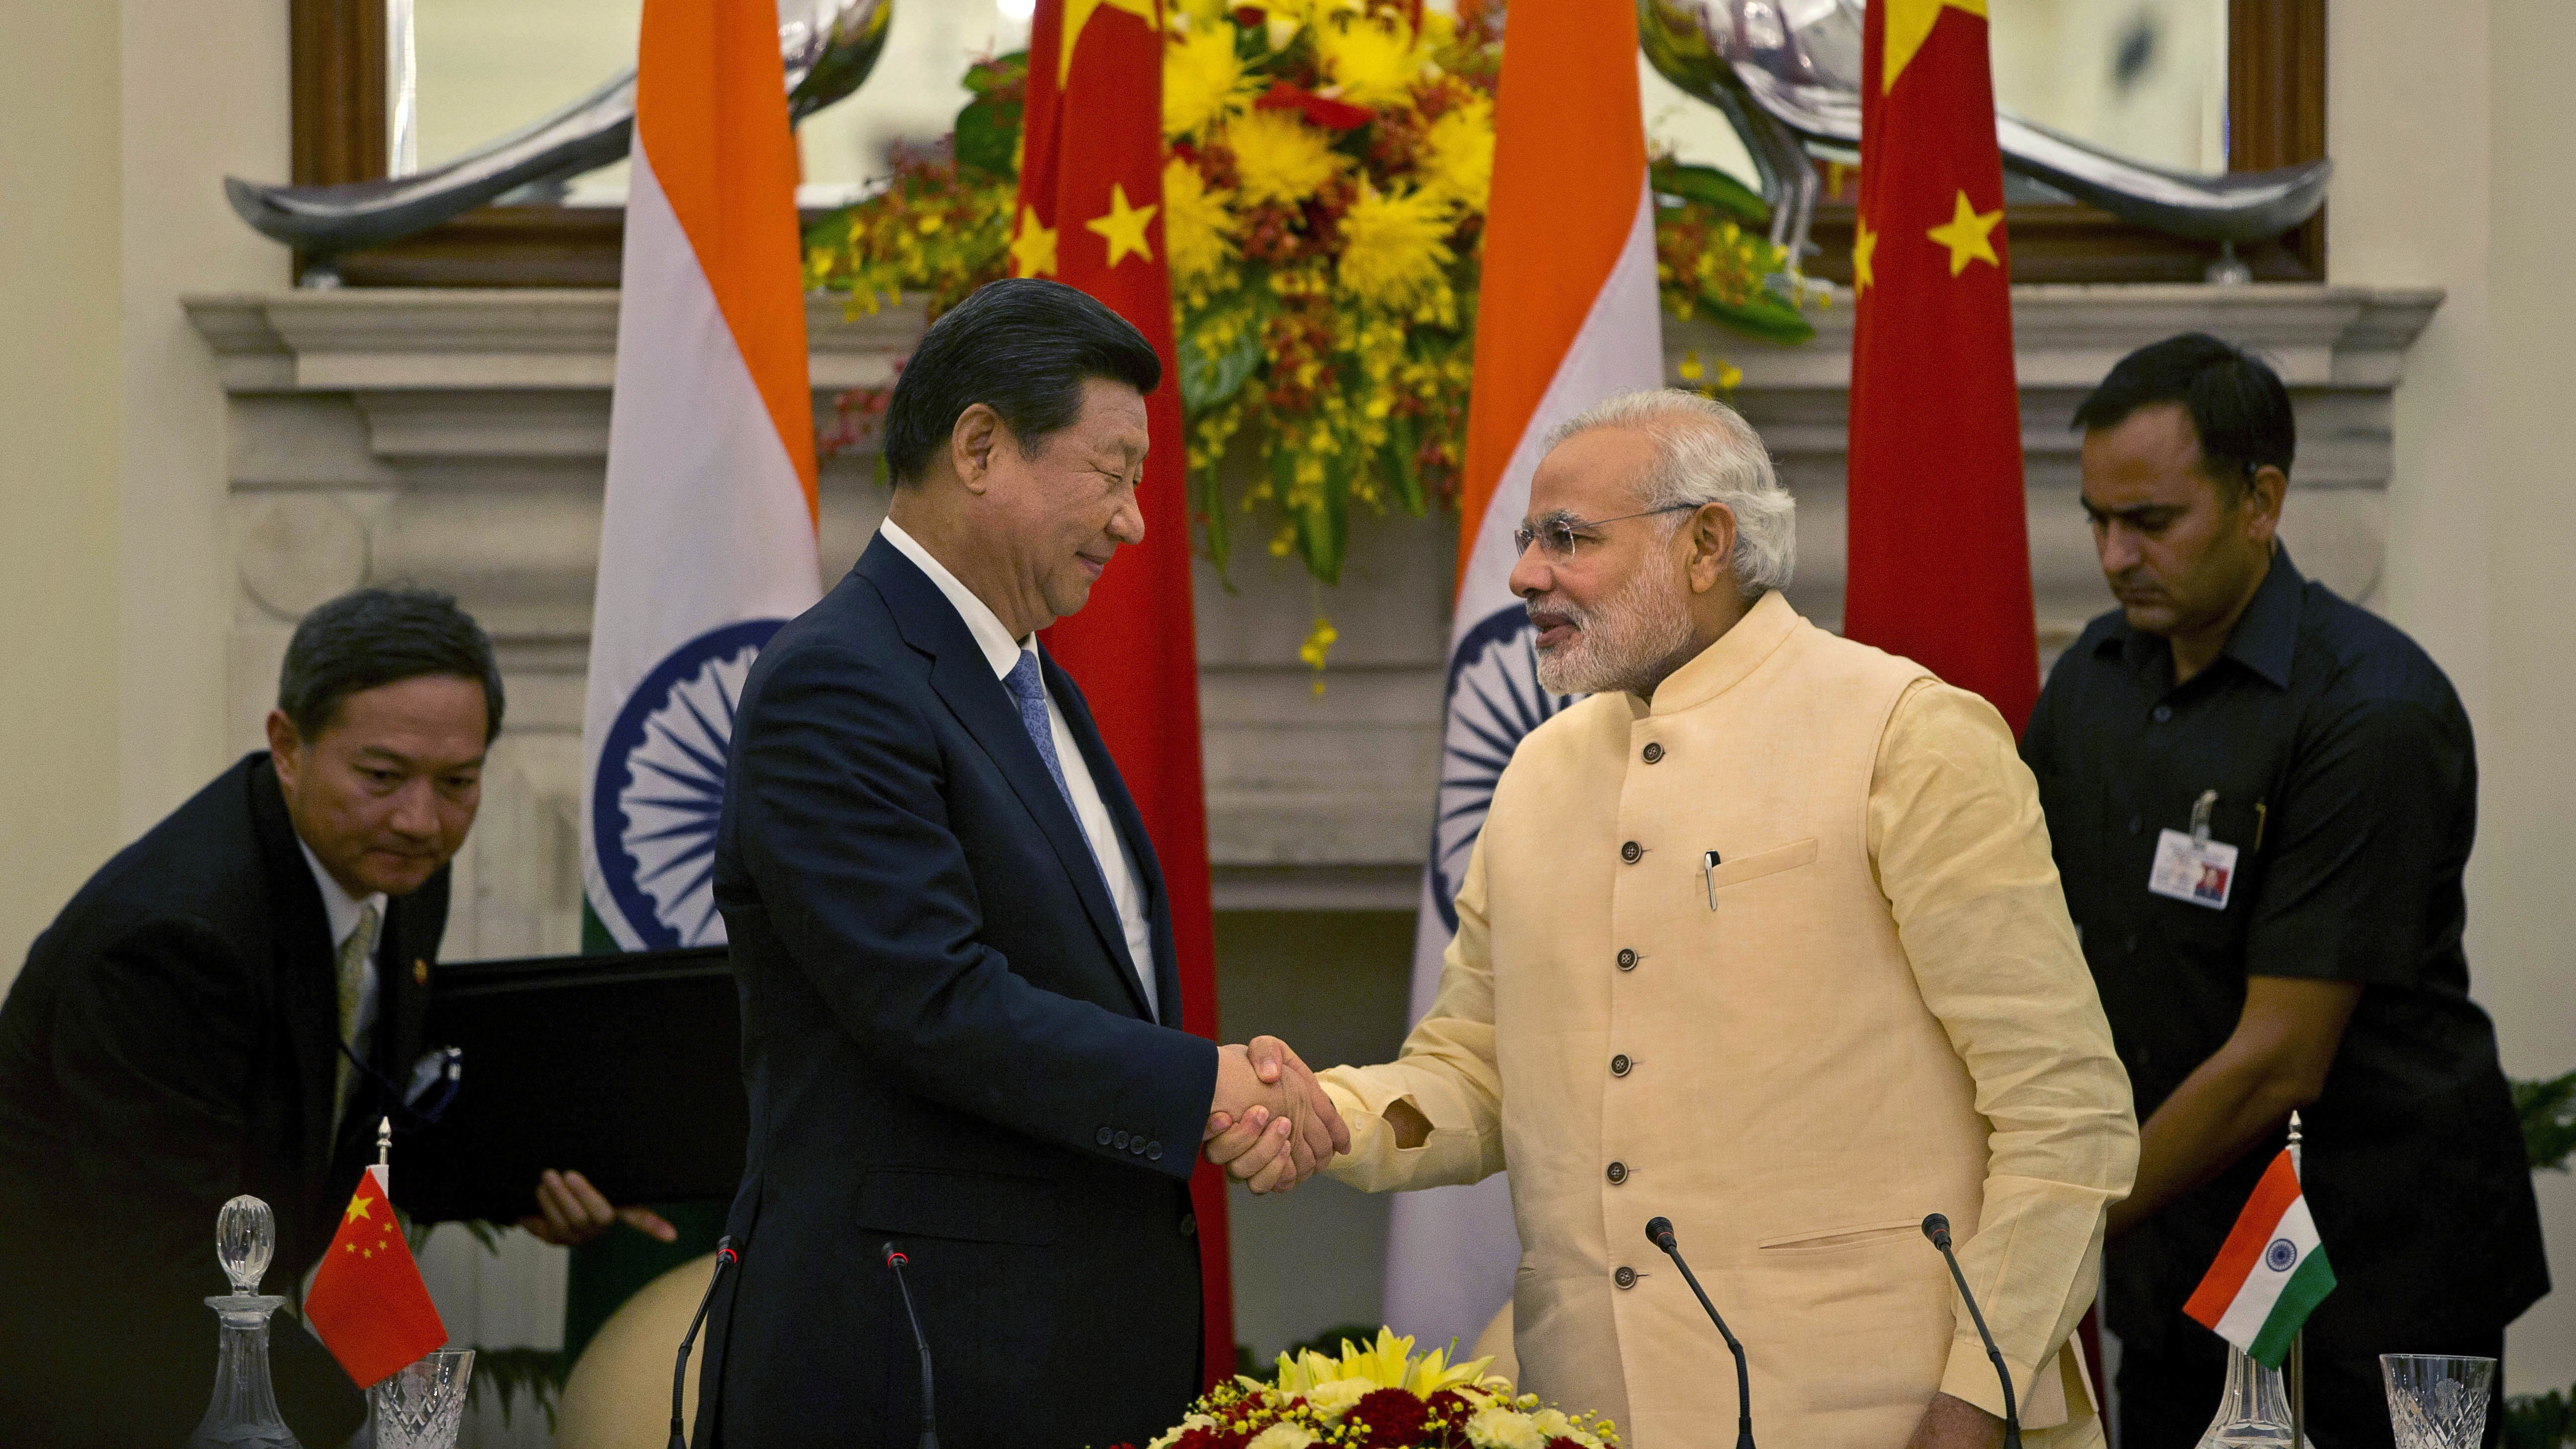 Chinese President Xi Jinping shakes hands with Indian Prime Minister Narendra Modi, right after signing agreements in New Delhi, India, Thursday, Sept. 18, 2014. Xi vowed to bring prosperity to Asia and create opportunities for the world as he and Modi began talks Thursday to deepen cooperation through investment and trade. (AP Photo /Manish Swarup)